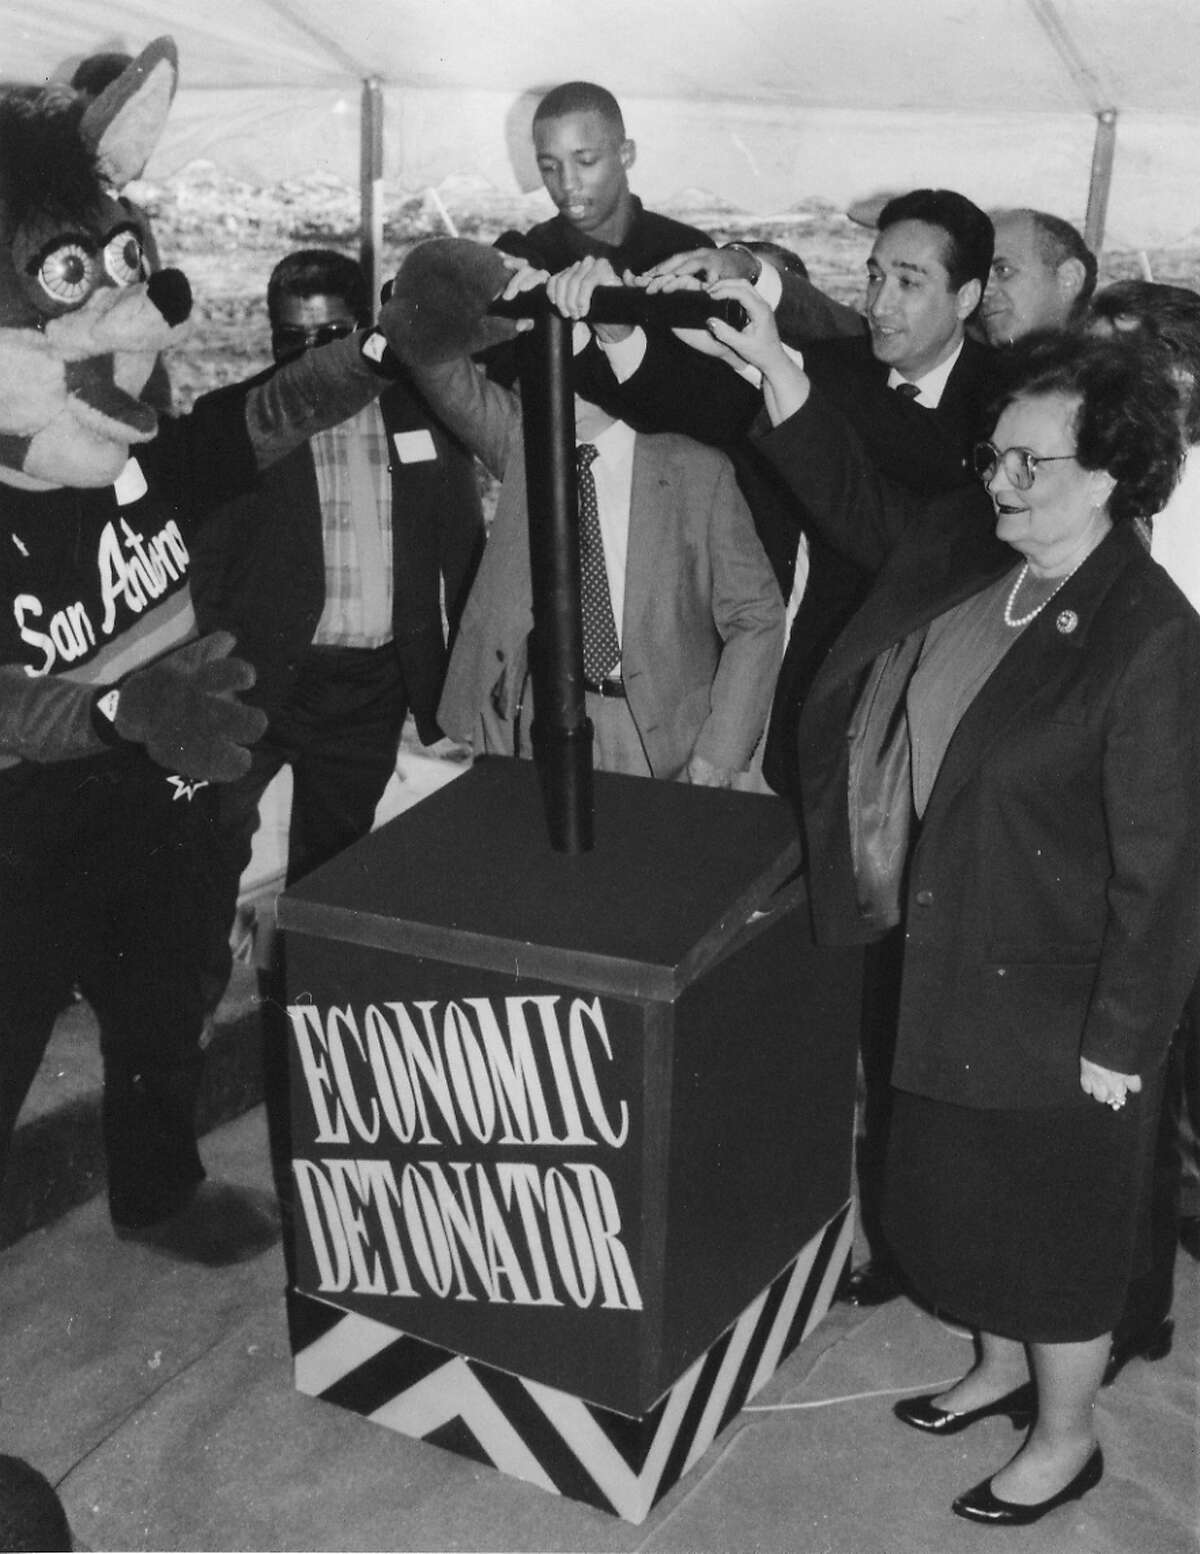 24. The Spurs Coyote joined former mayor Henry Cisneros and Lila Cockrell, mayor at the time, to rally for the Alamodome in 1990.